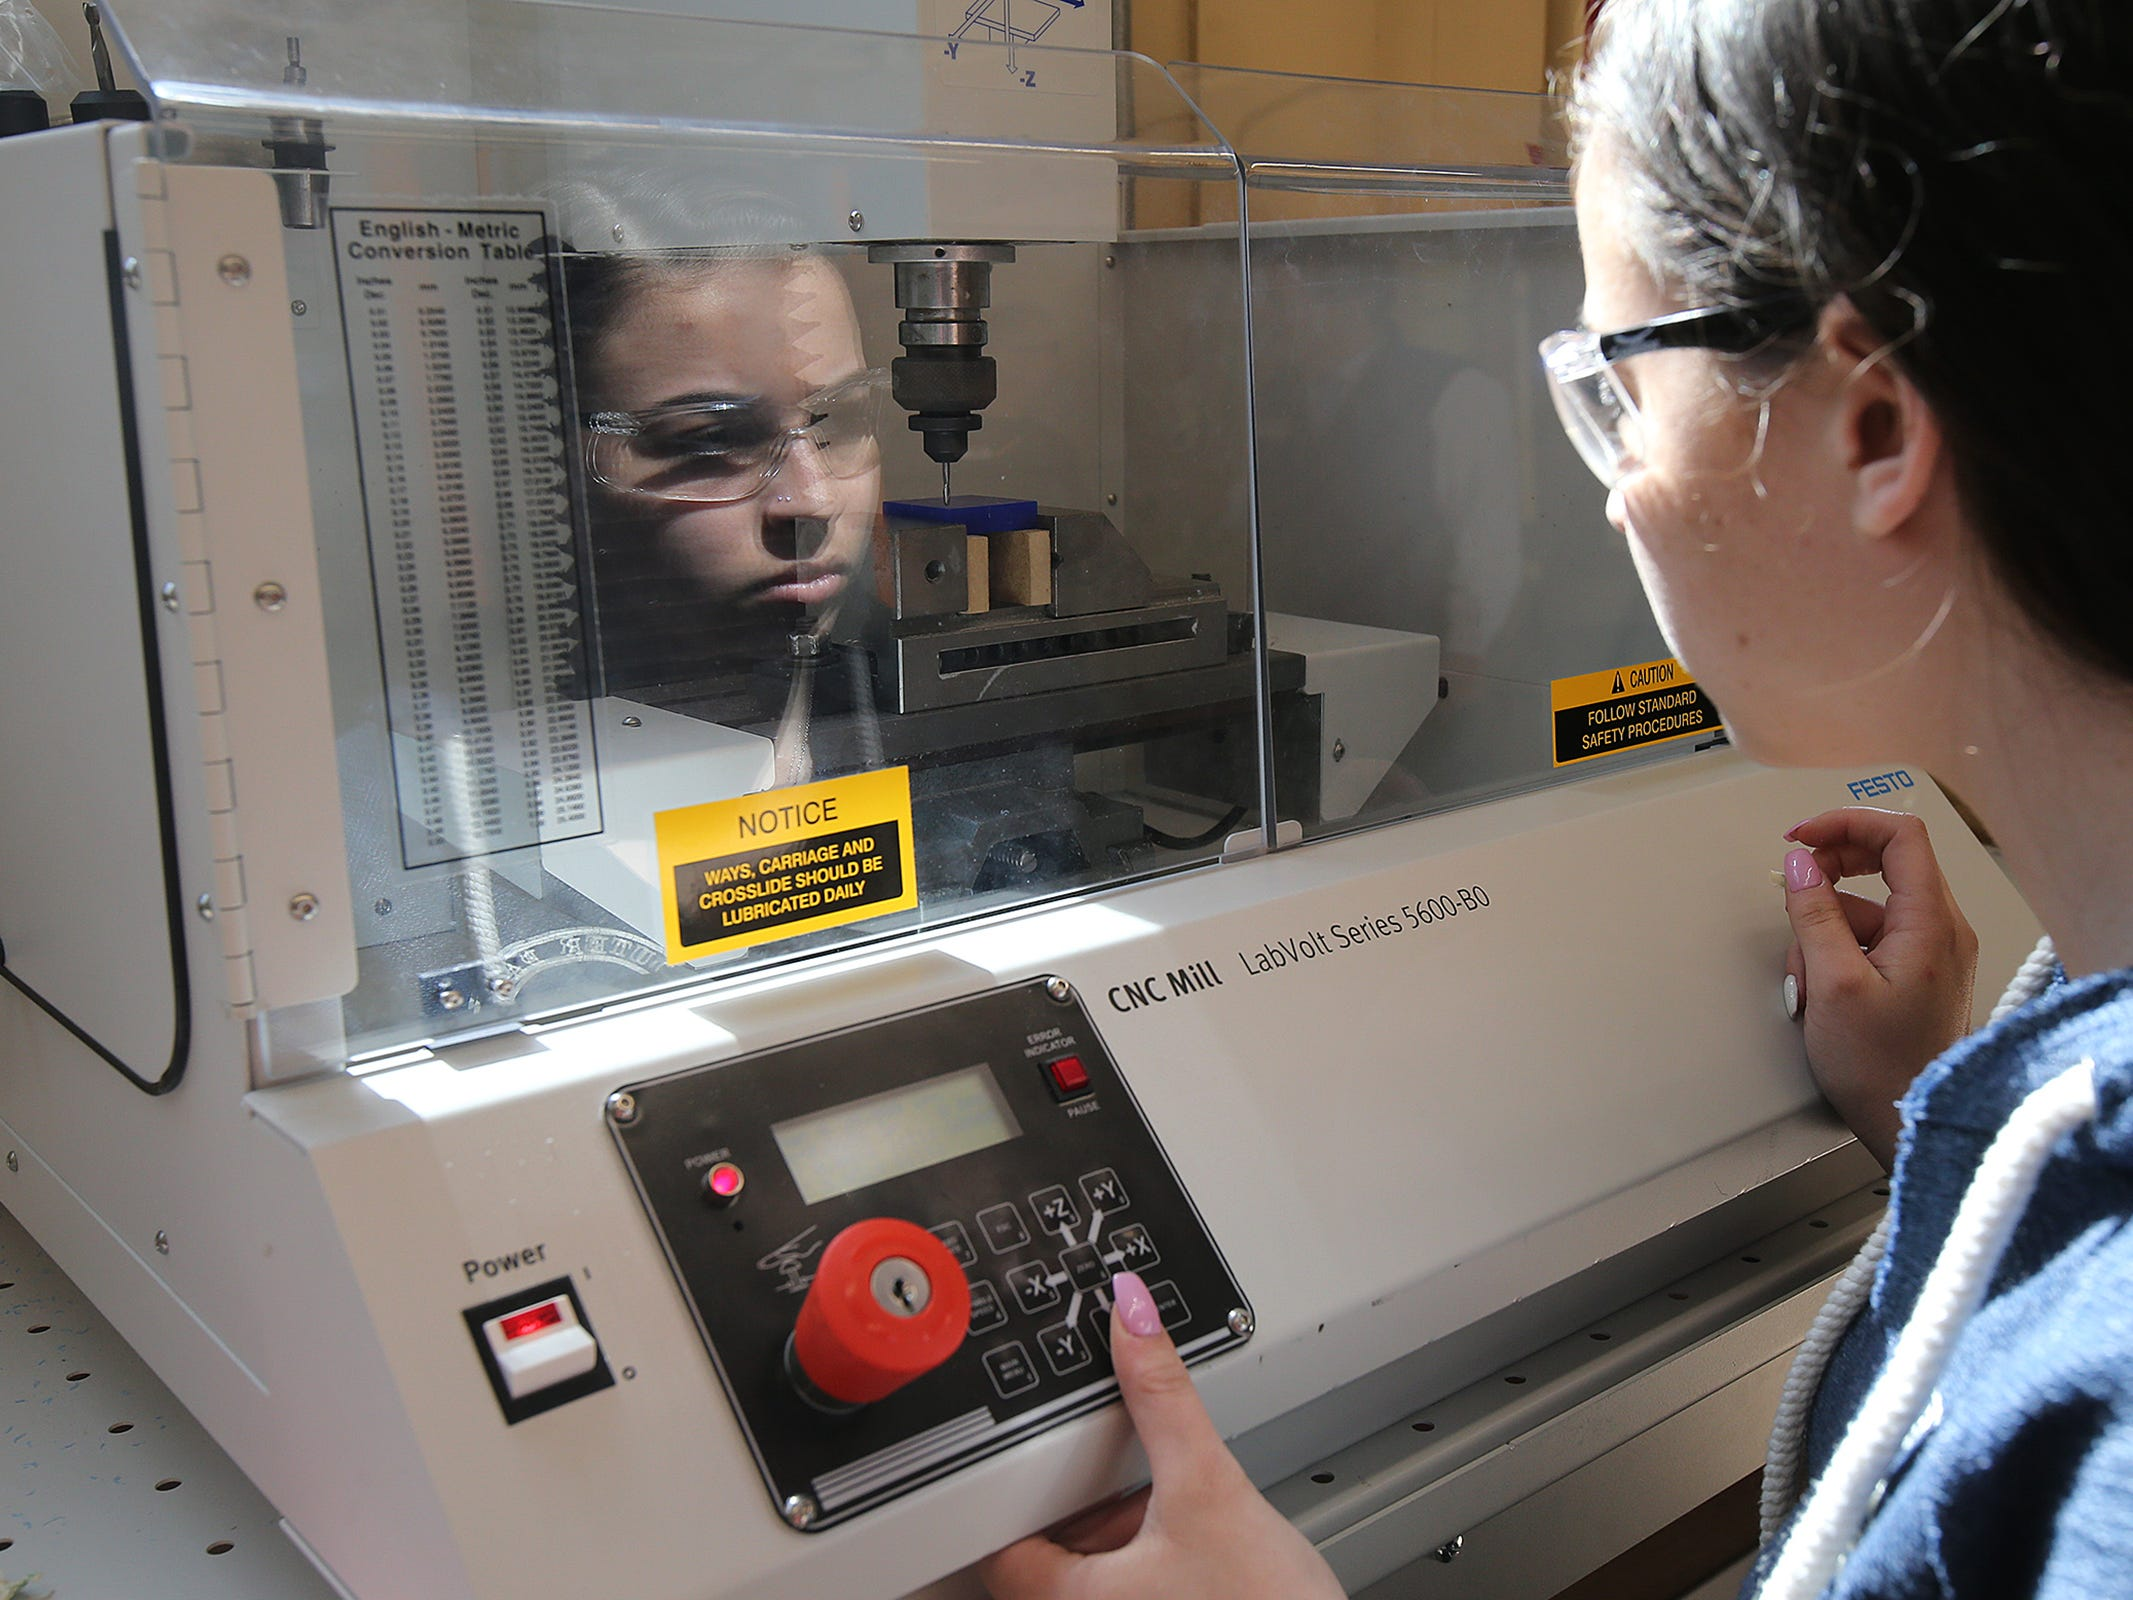 Sierra Reilly, 17, of Lacey Twp. cuts her initials into a block using coordinate geometry and computer numerical control (CNC) during a pre-engineering technology class at Ocean County Vocational Technical School in Jackson, NJ Thursday, April 4, 2019.